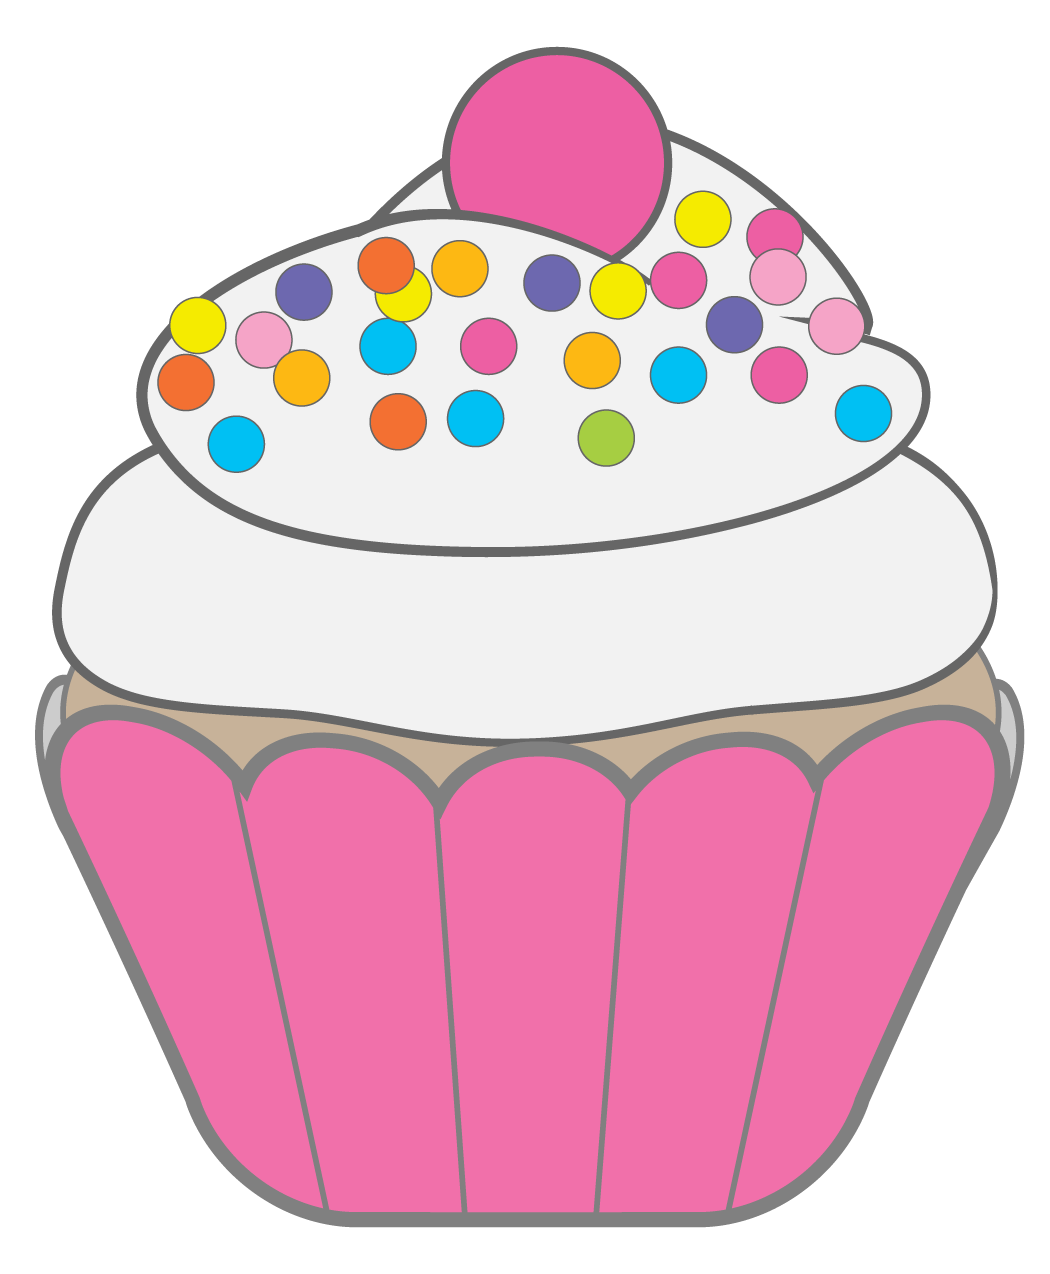 Free birthday cake clipart images vector freeuse stock Cute birthday cake clipart gallery free clipart picture cakes ... vector freeuse stock